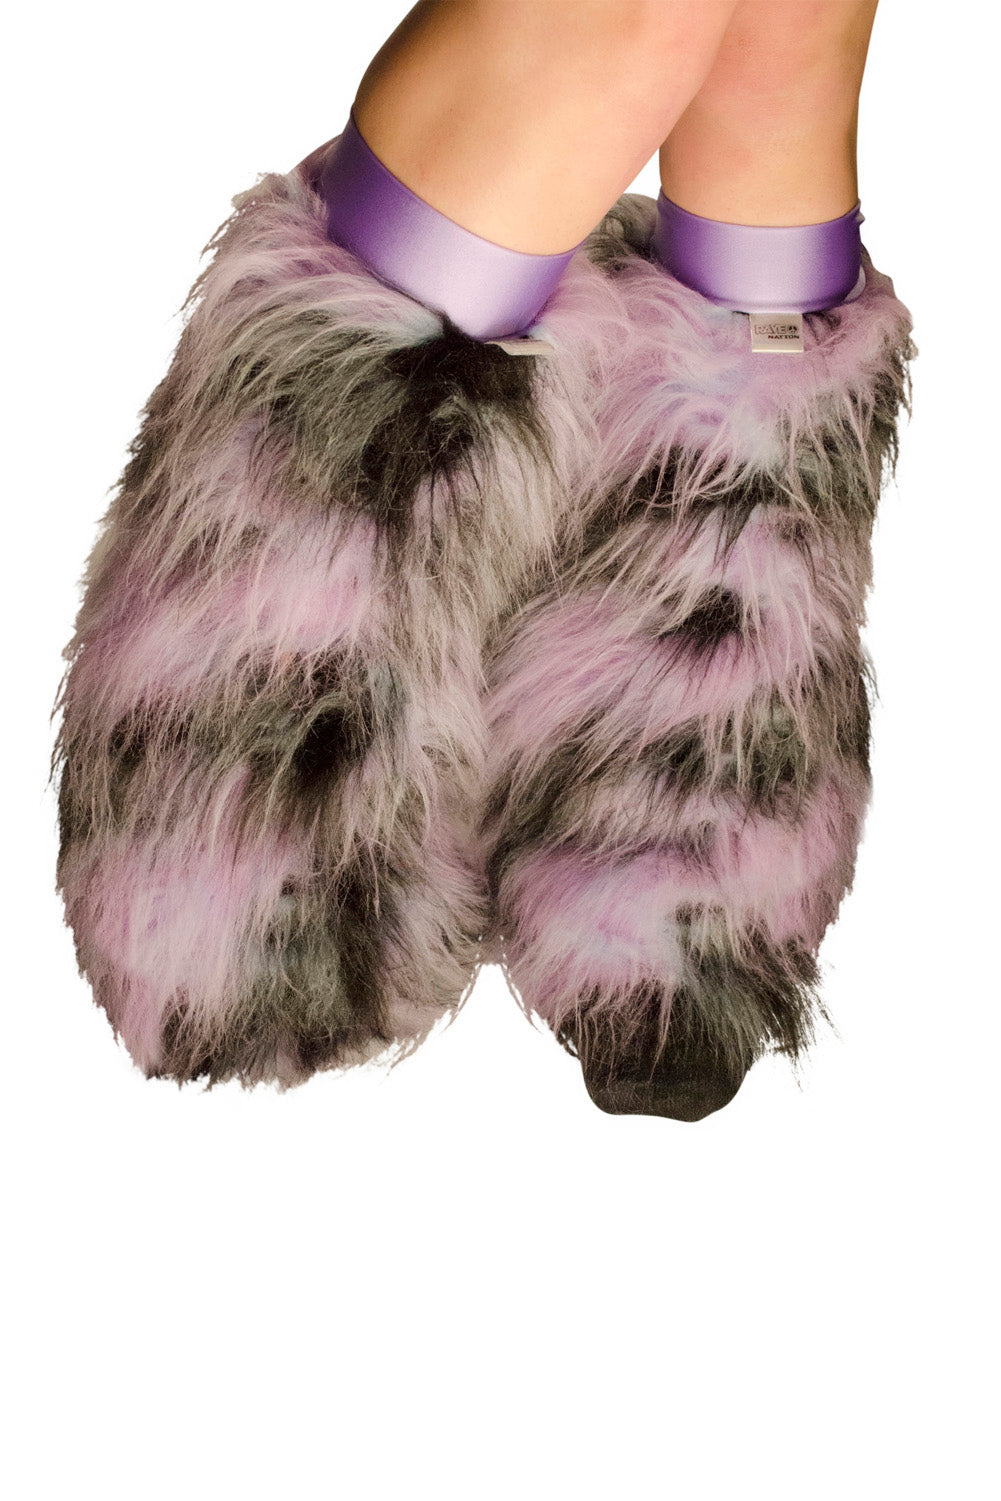 Lilac and Black Leg Warmer Fluffies